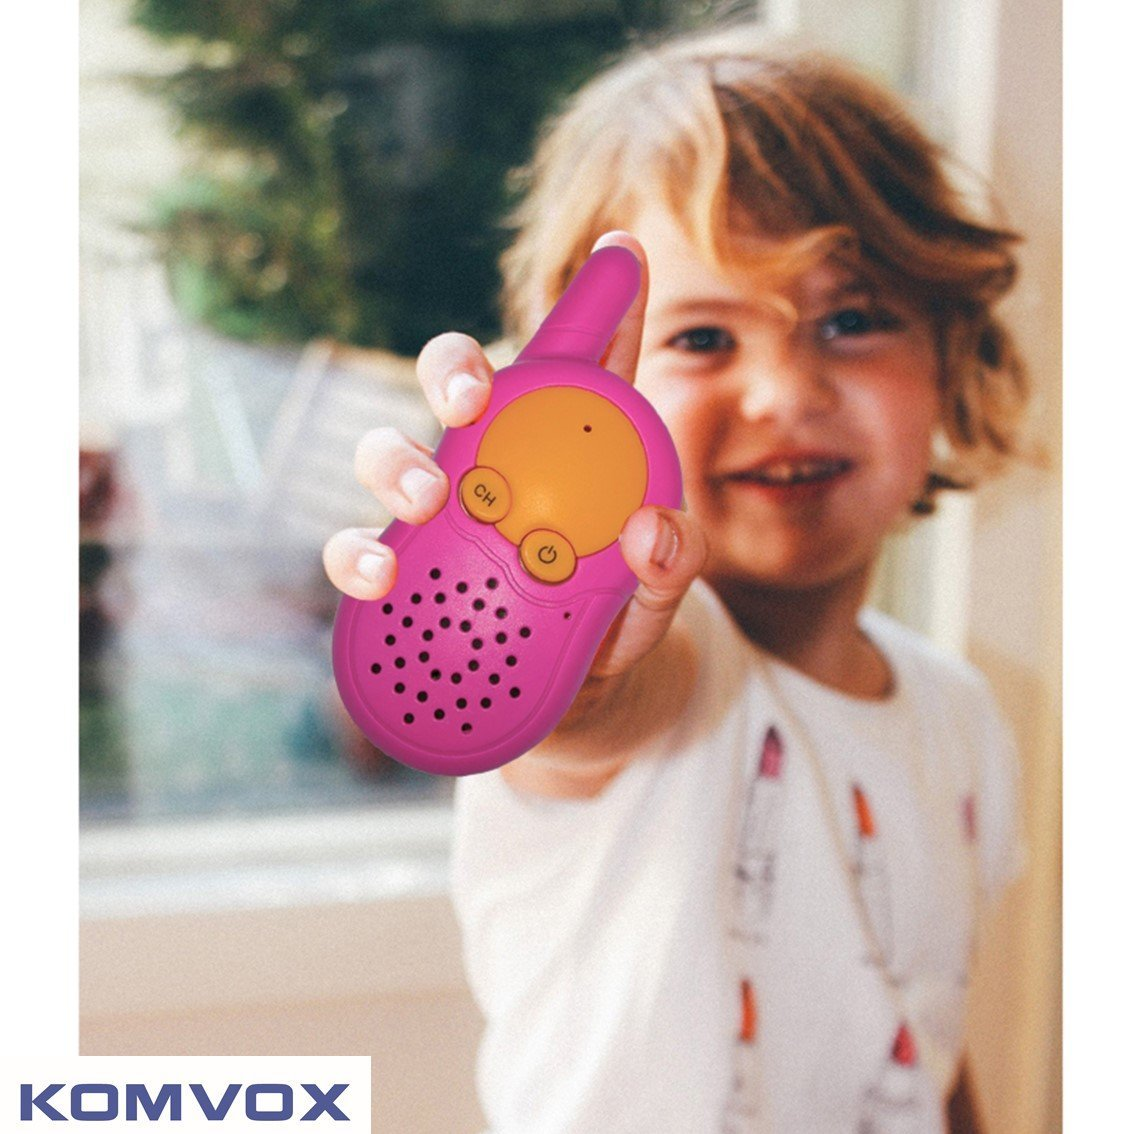 KOMVOX Walkie Talkies for Kids, Toys for Girls Age 3 4 5 6, Kids Birthday Gifts for 3 4 5 Year Old Girls, Top Toys for Girls Pink Gifts by KOMVOX (Image #8)